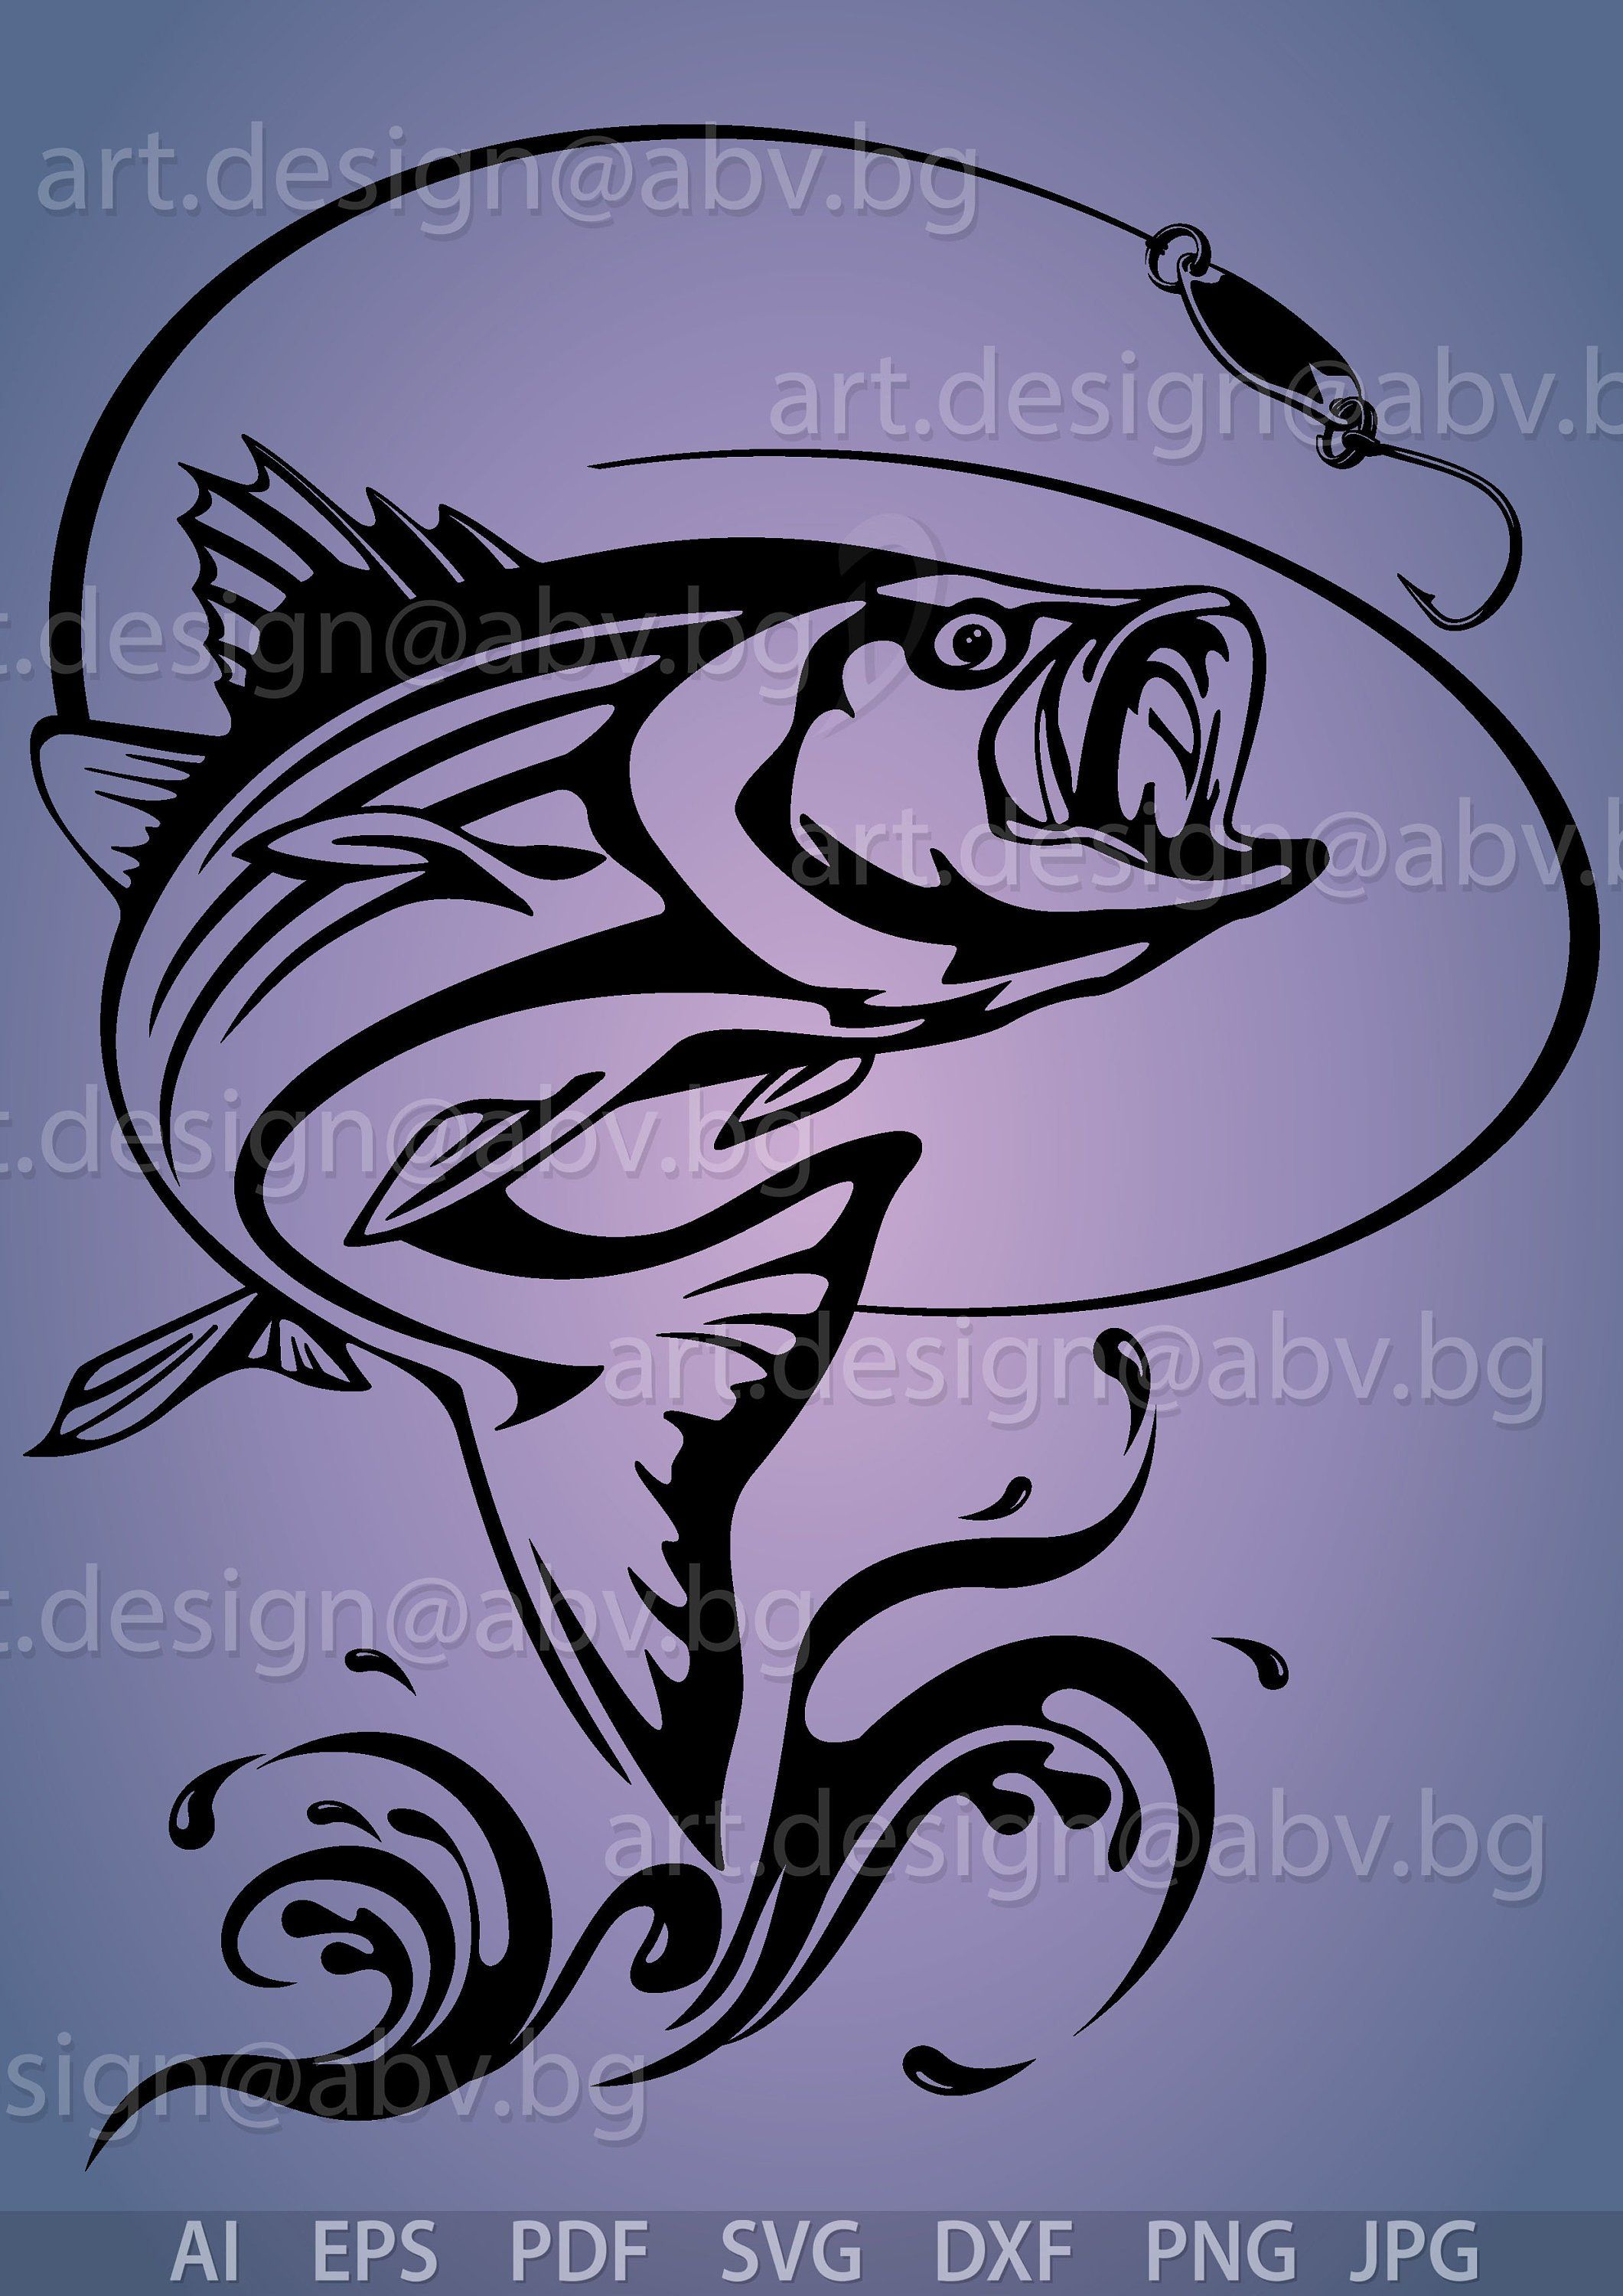 Download Vector Fish Striped Bass Ai Eps Pdf Png Svg Dxf Jpg Etsy In 2021 Graphic Image Striped Bass Fish On A Hook